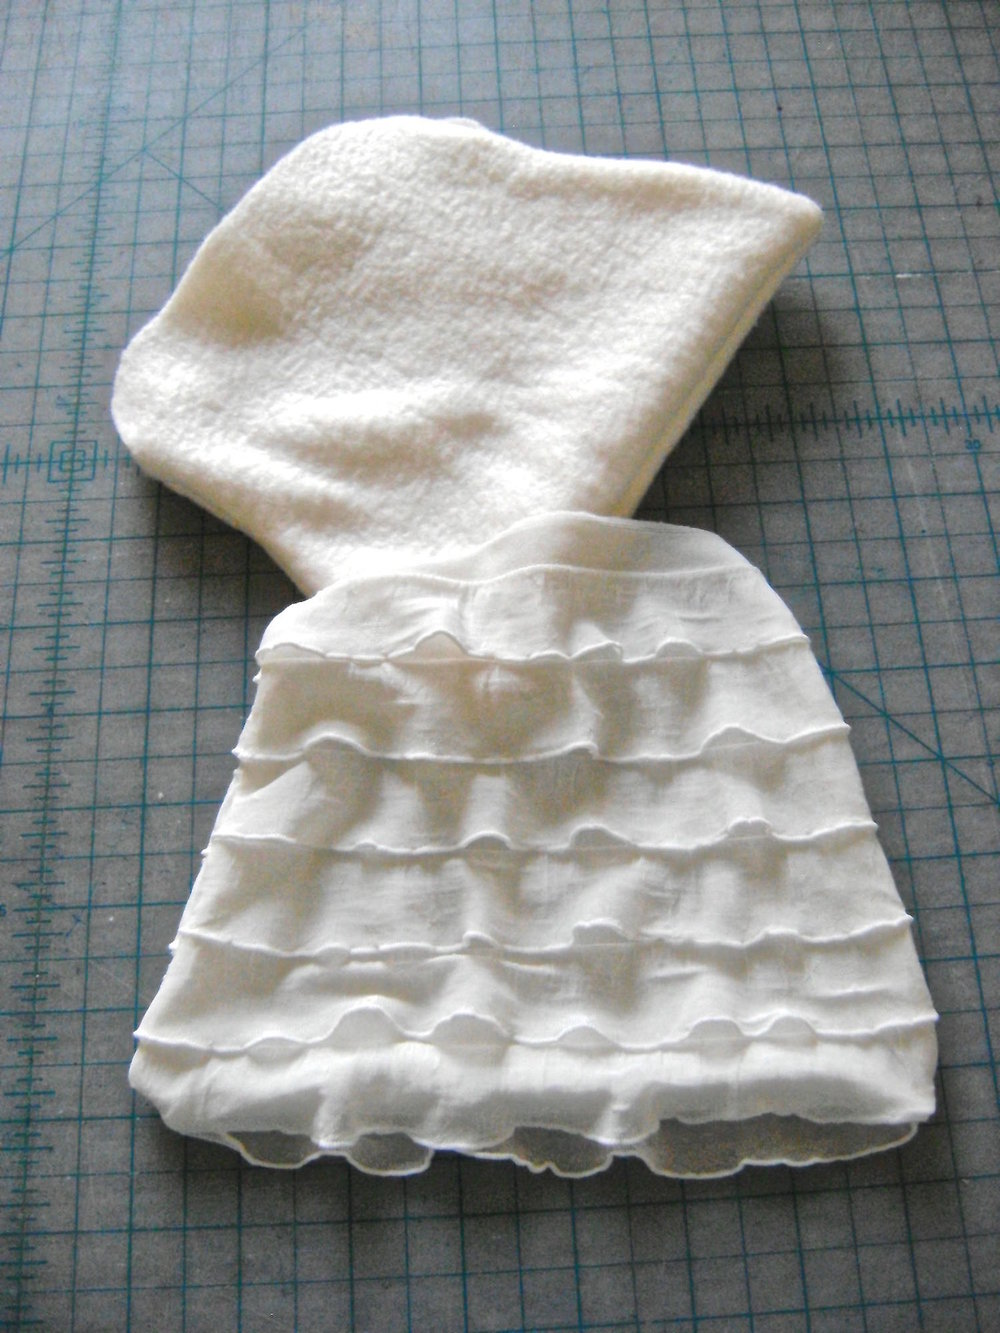 step 6 - Slip the fleece purse into the ruffled purse.